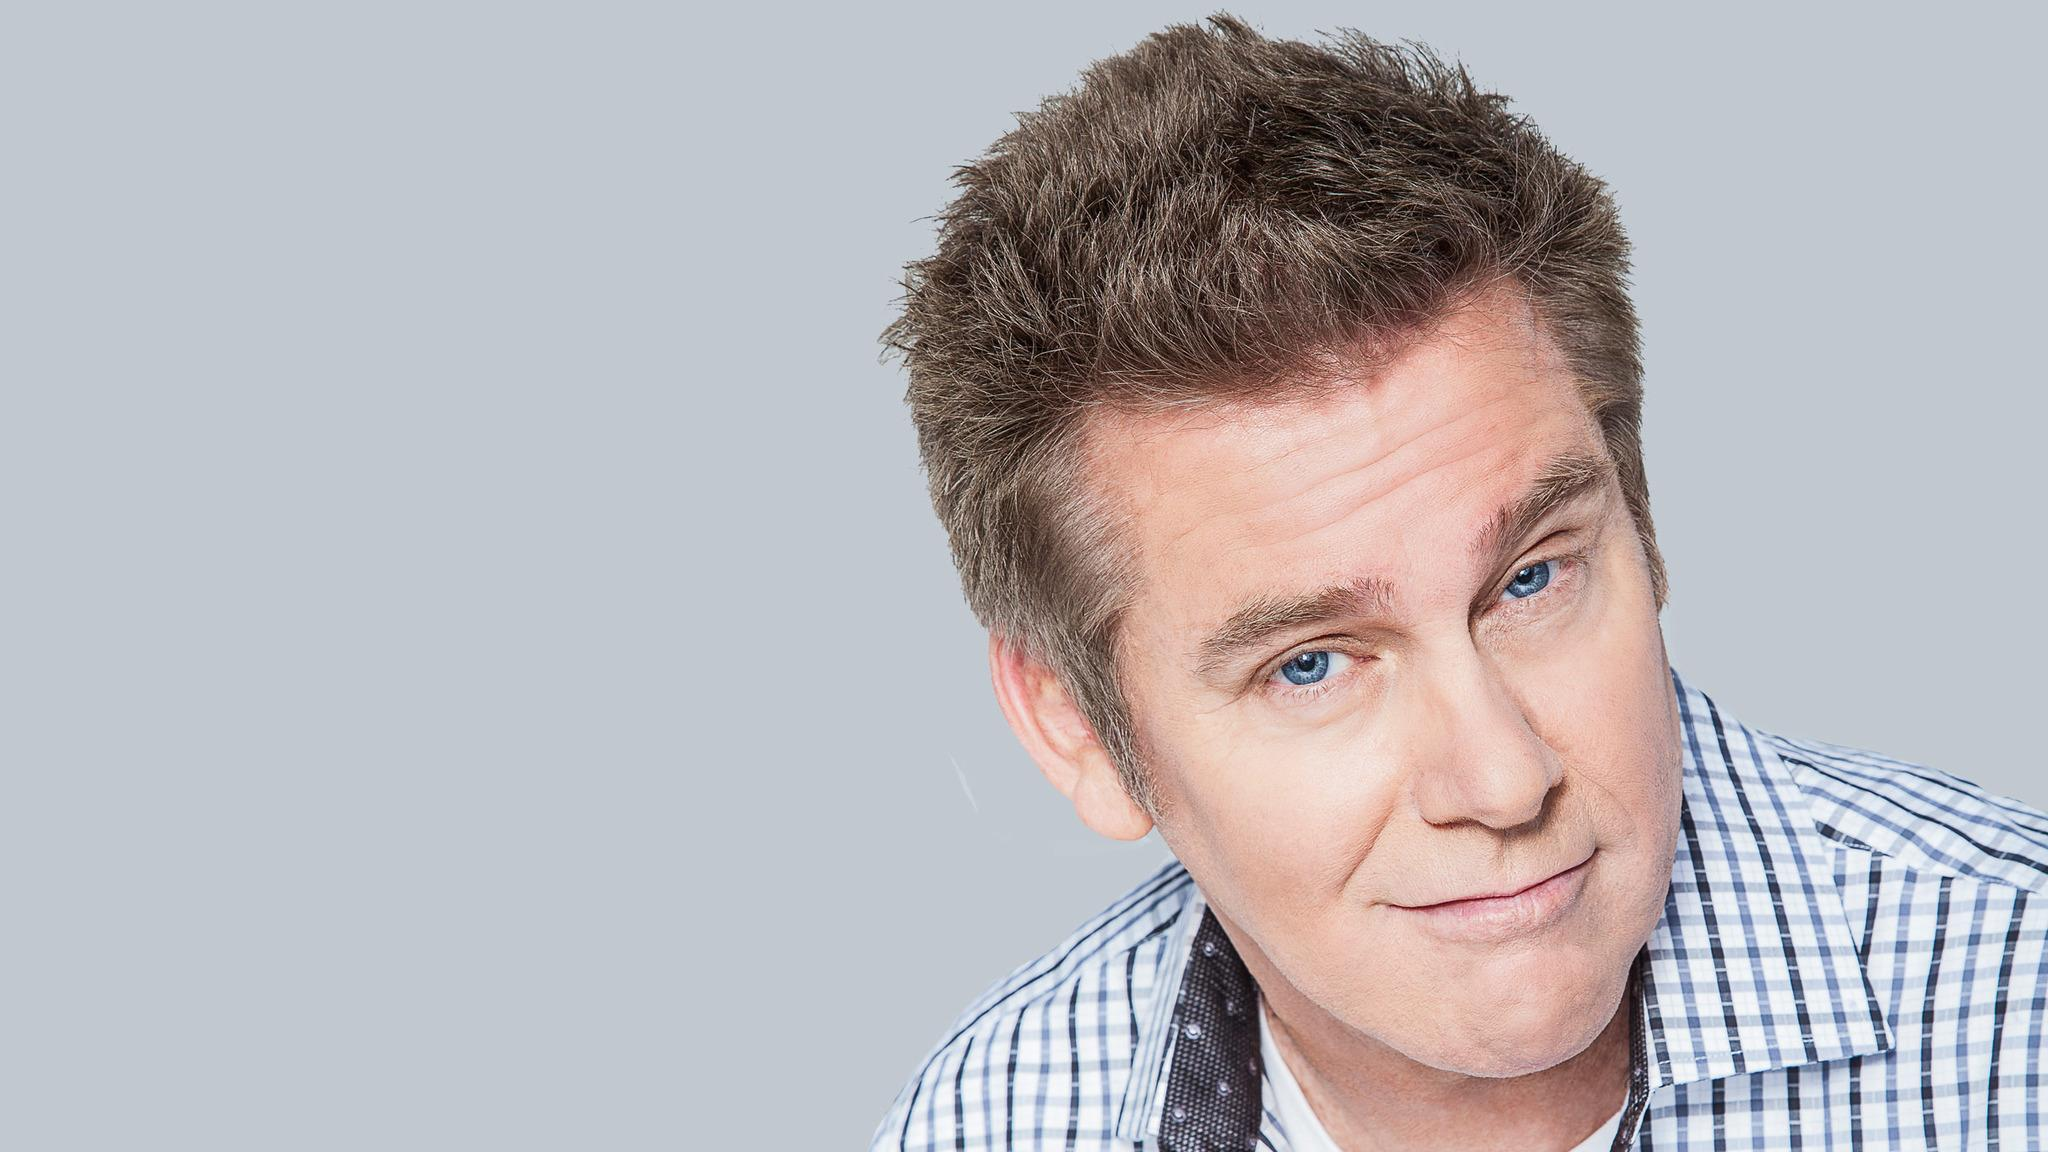 Brian Regan presale password for early tickets in Irving